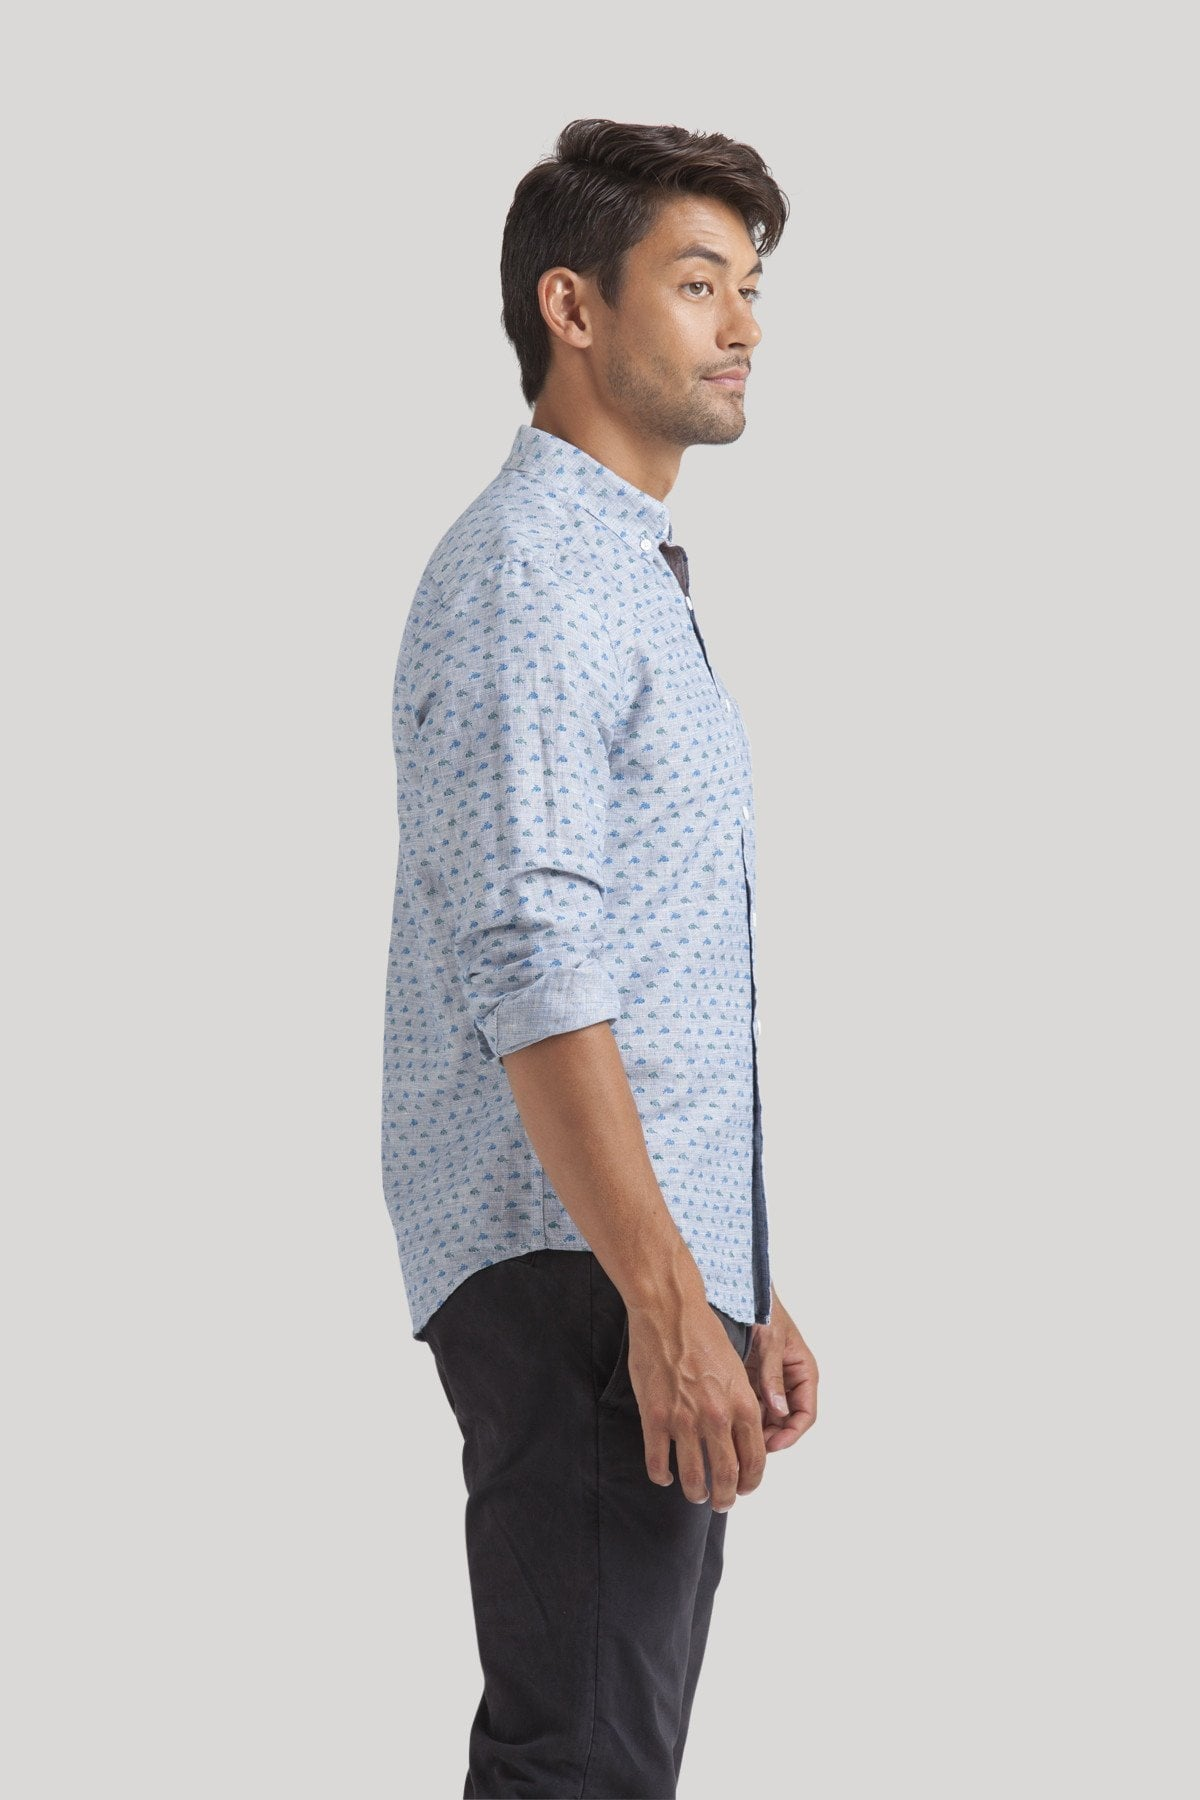 Koi Shirt - Imperial Blue